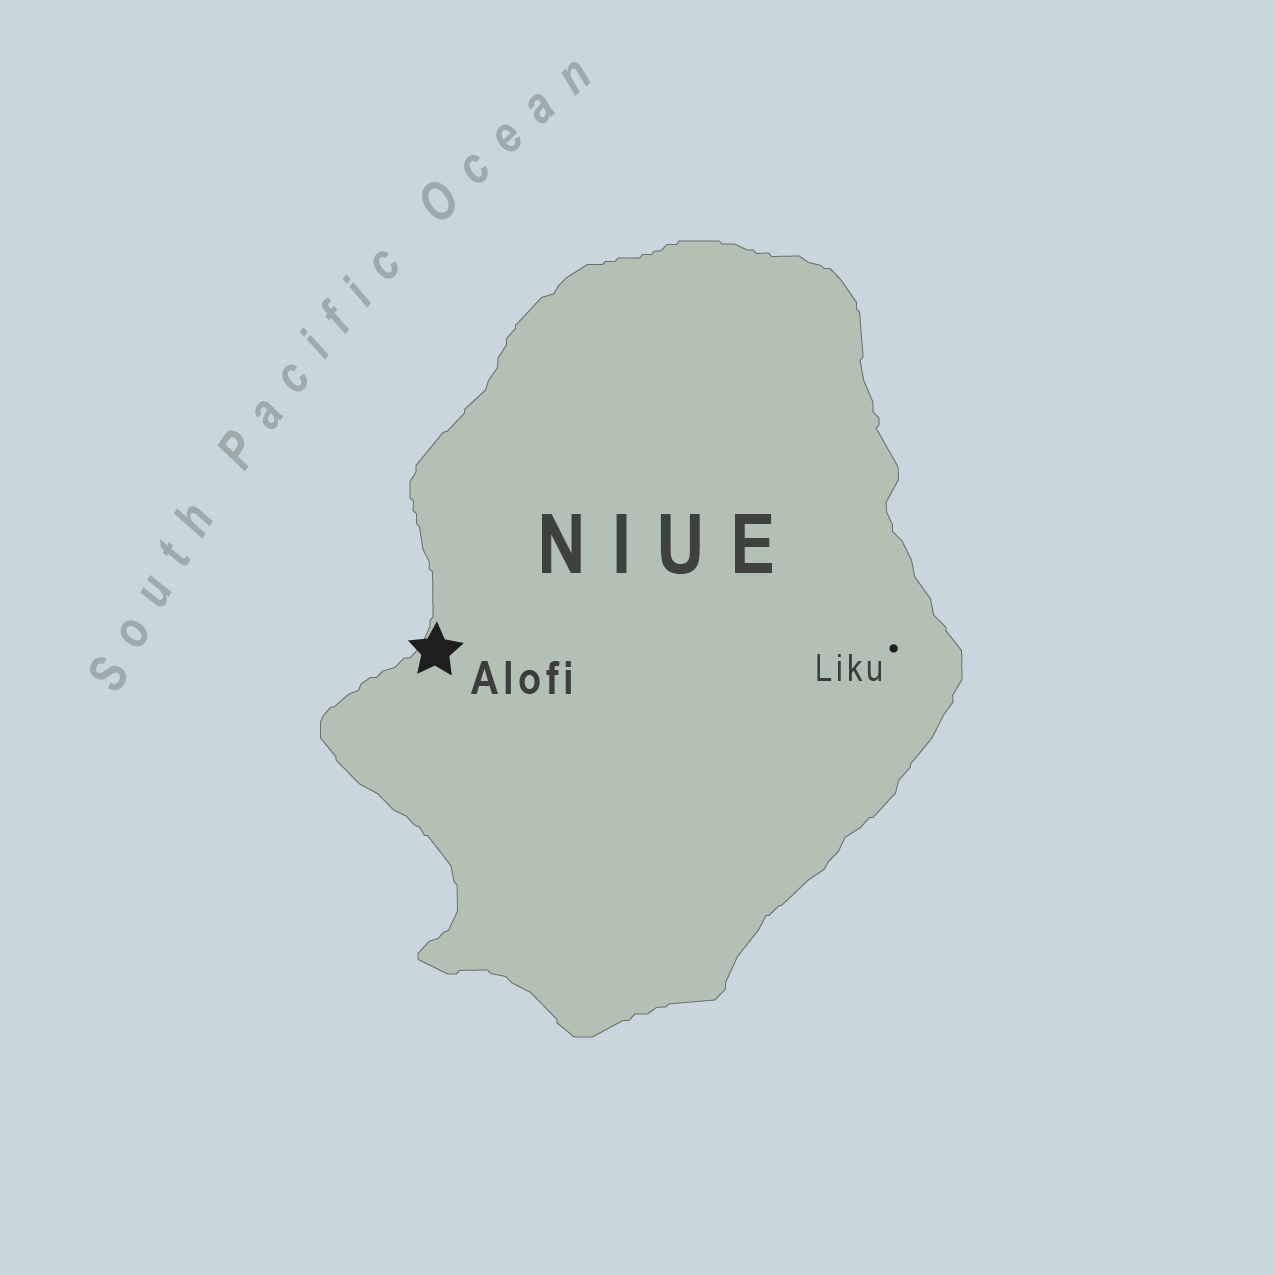 Health Information For Travelers To Niue New Zealand Traveler - Niue map